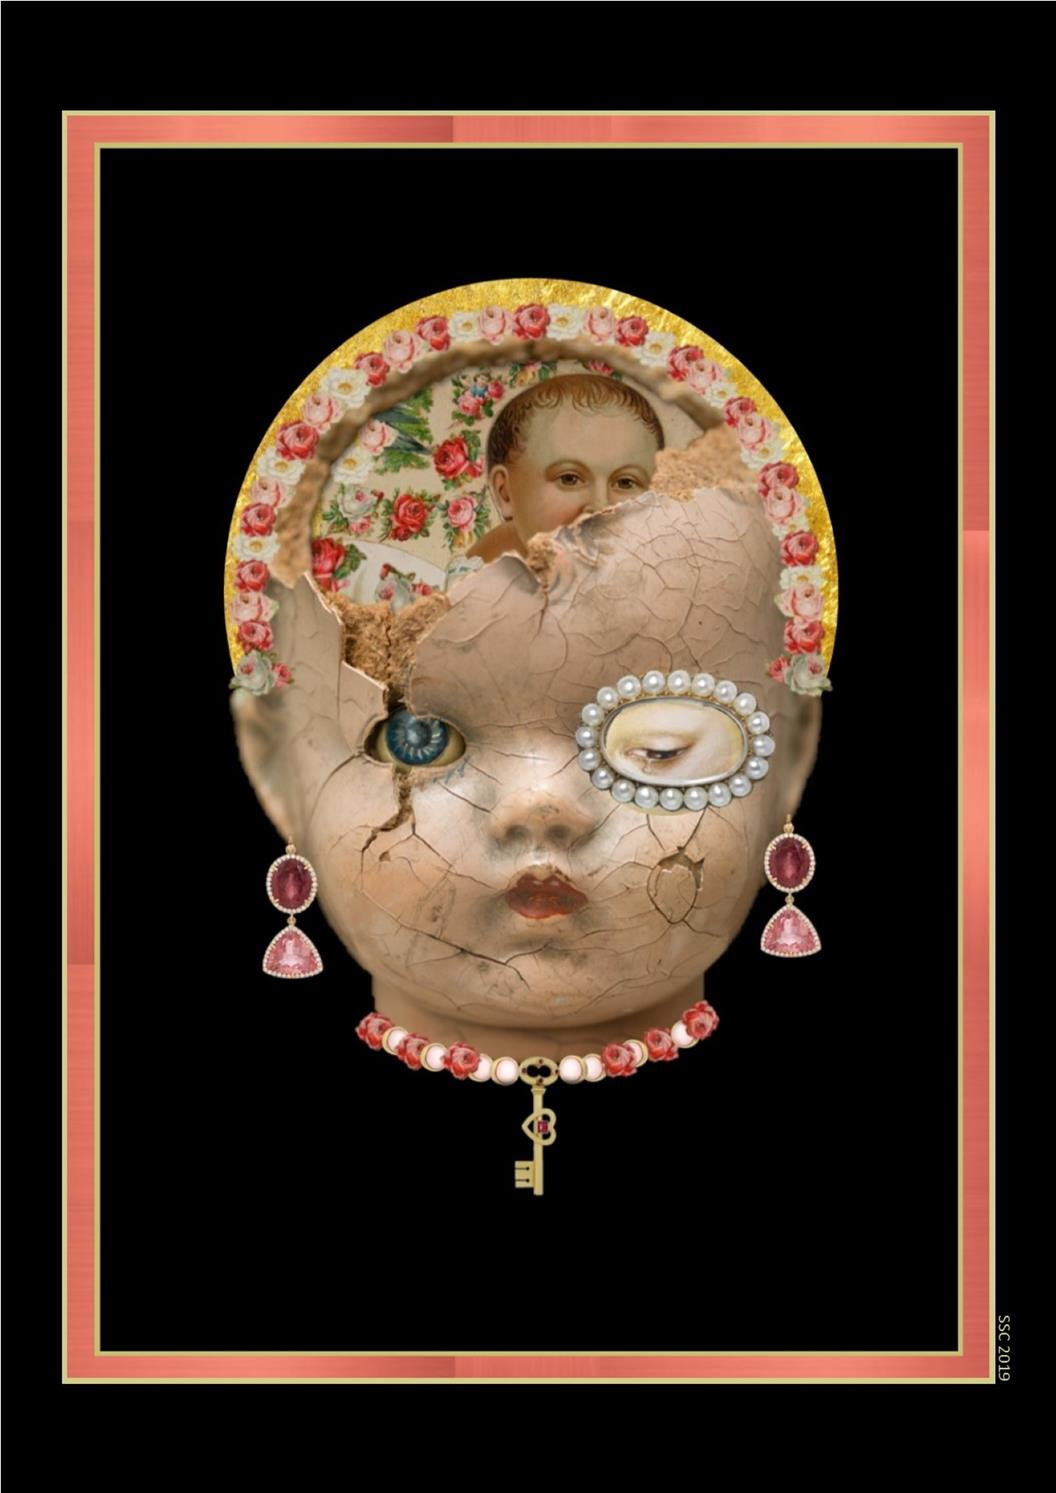 Face of a doll on a black background framed by a rectangular pink frame. The doll's face is cracked and collaged over with decorative roses and pearls, the doll is wearing hanging gem earrings and a necklace decorated with a heart shaped key.